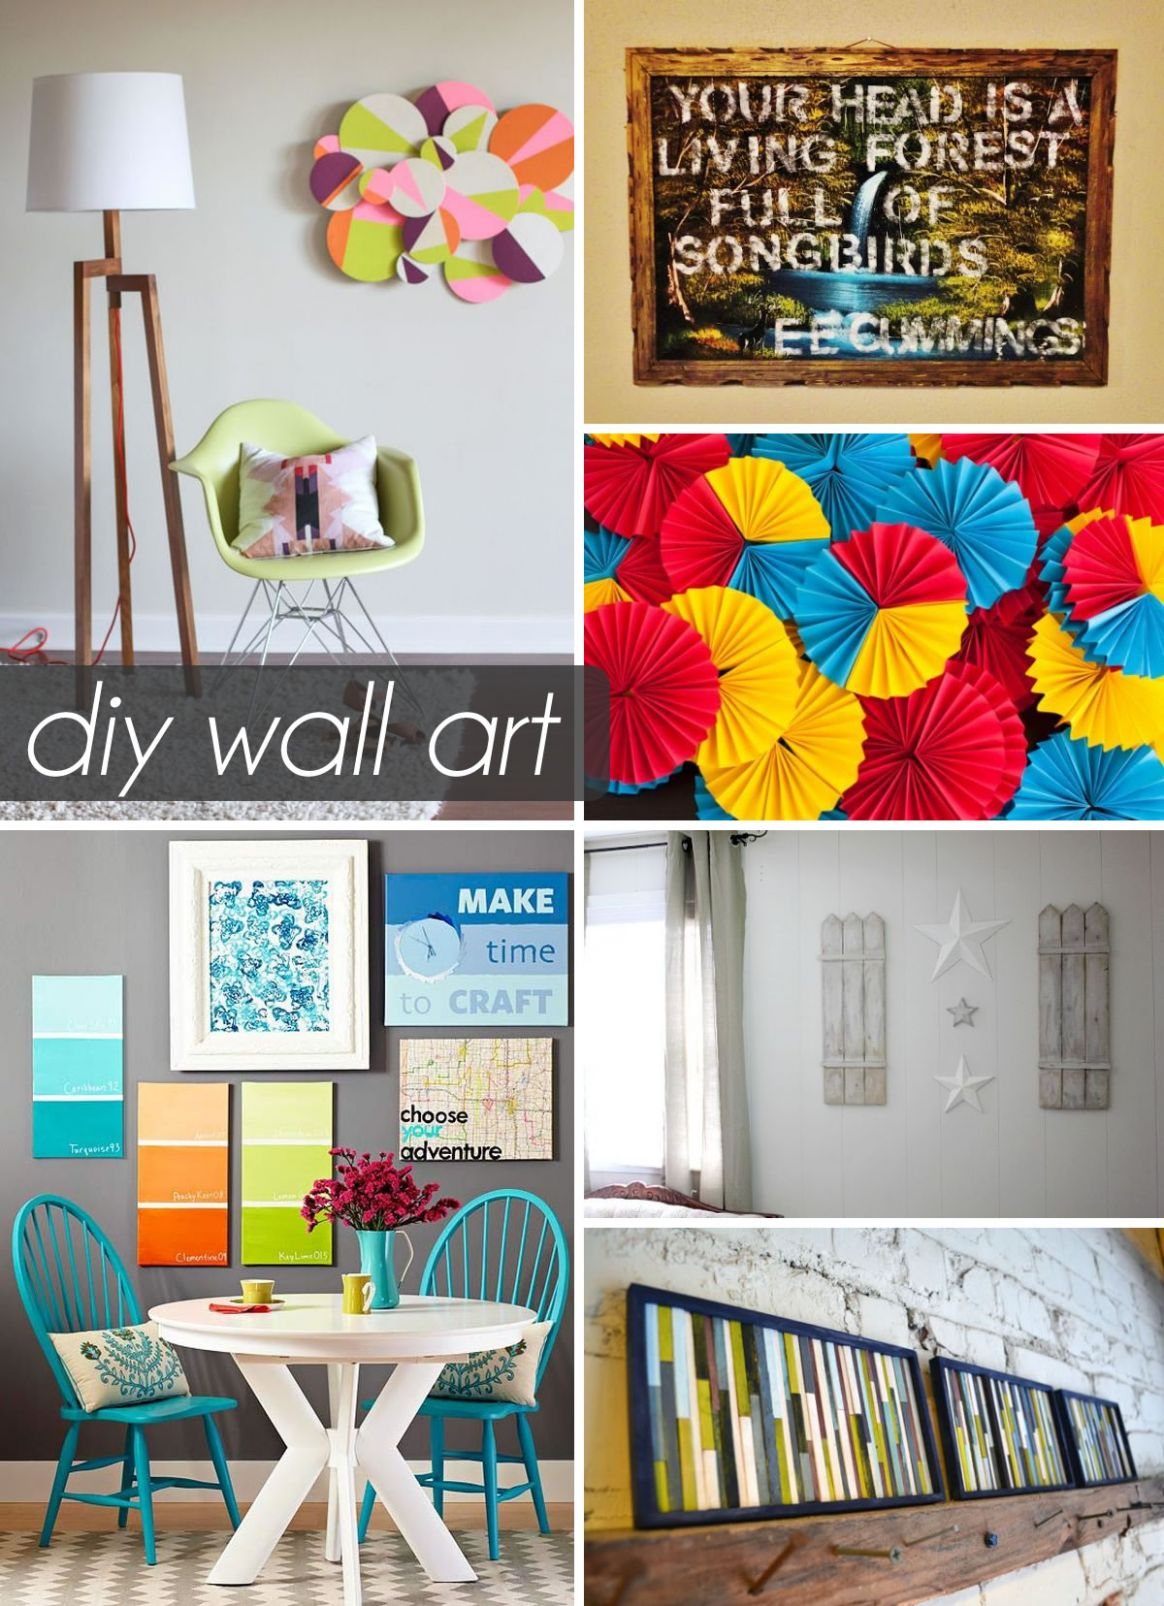 12 Beautiful DIY Wall Art Ideas For Your Home - wall decoration ideas easy diy